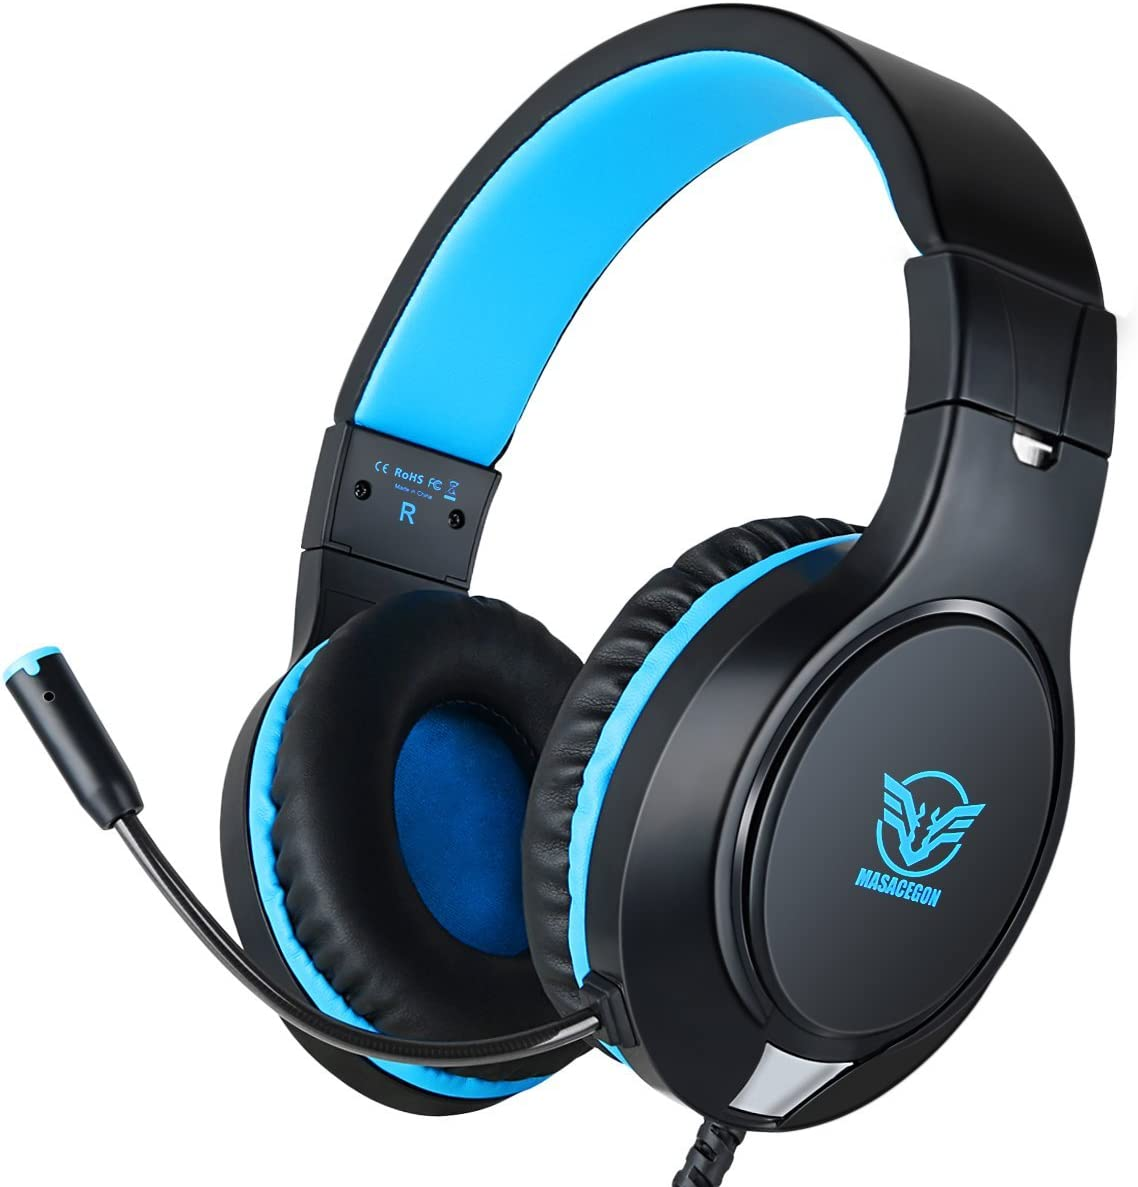 Amazon Com Gaming Headset For Xbox One Ps4 Nintendo Switch Bass Surround And Noise Cancelling With Flexible Mic 3 5mm Wired Adjustable Over Ear Headphones For Laptop Pc Ipad Smartphones Blue Black Computers Accessories